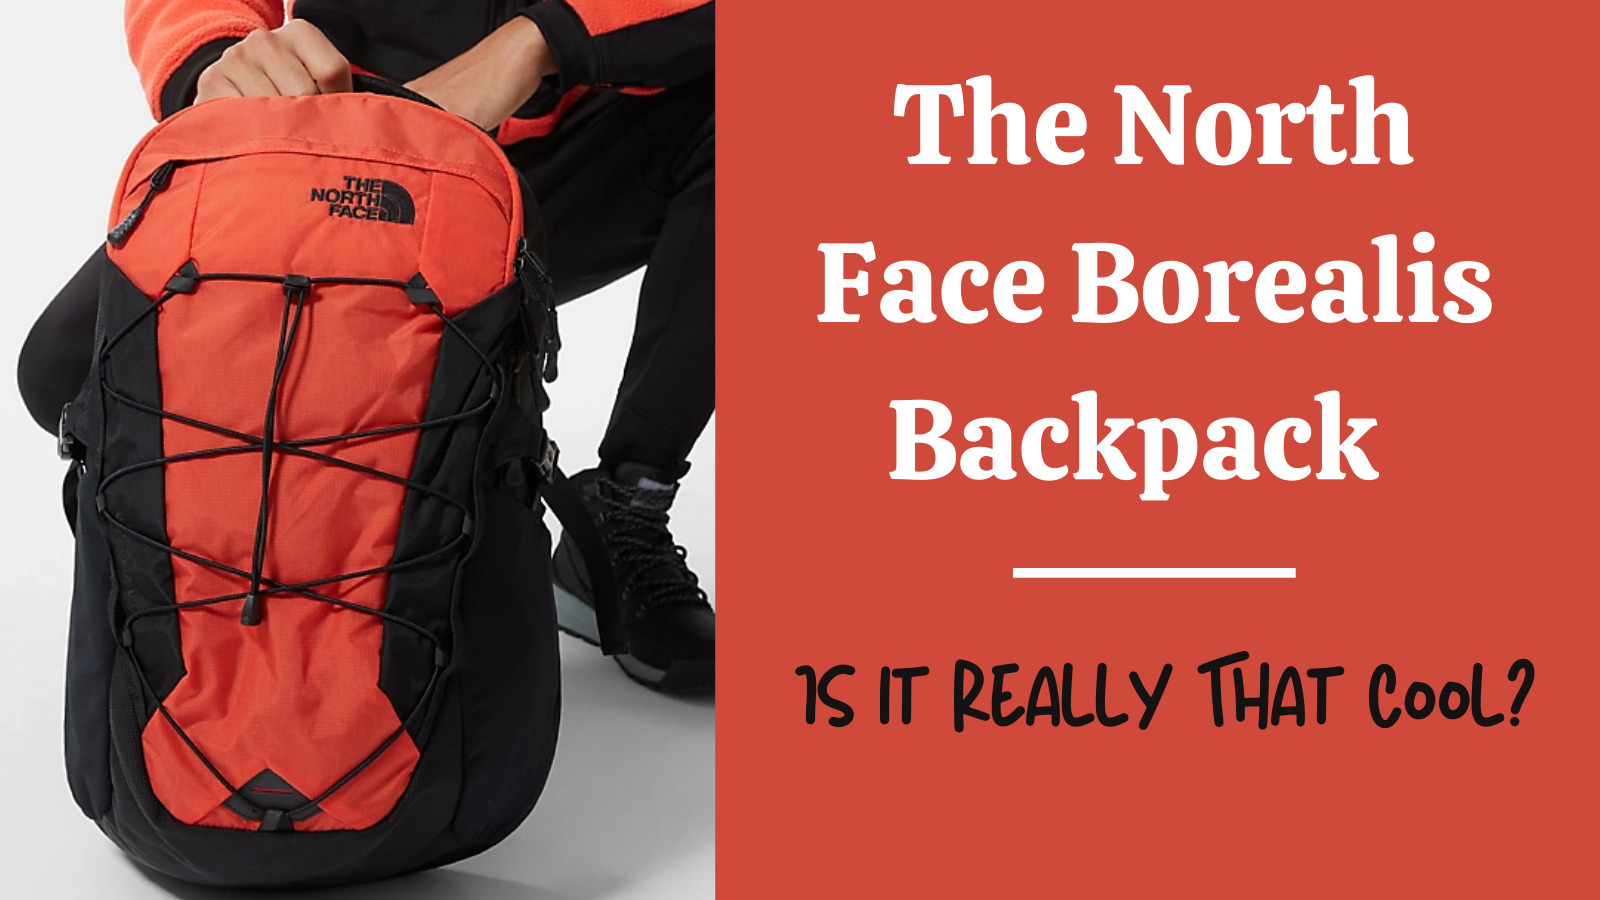 The North Face Borealis Backpack review: feature image of backpack being held by a man on his knee